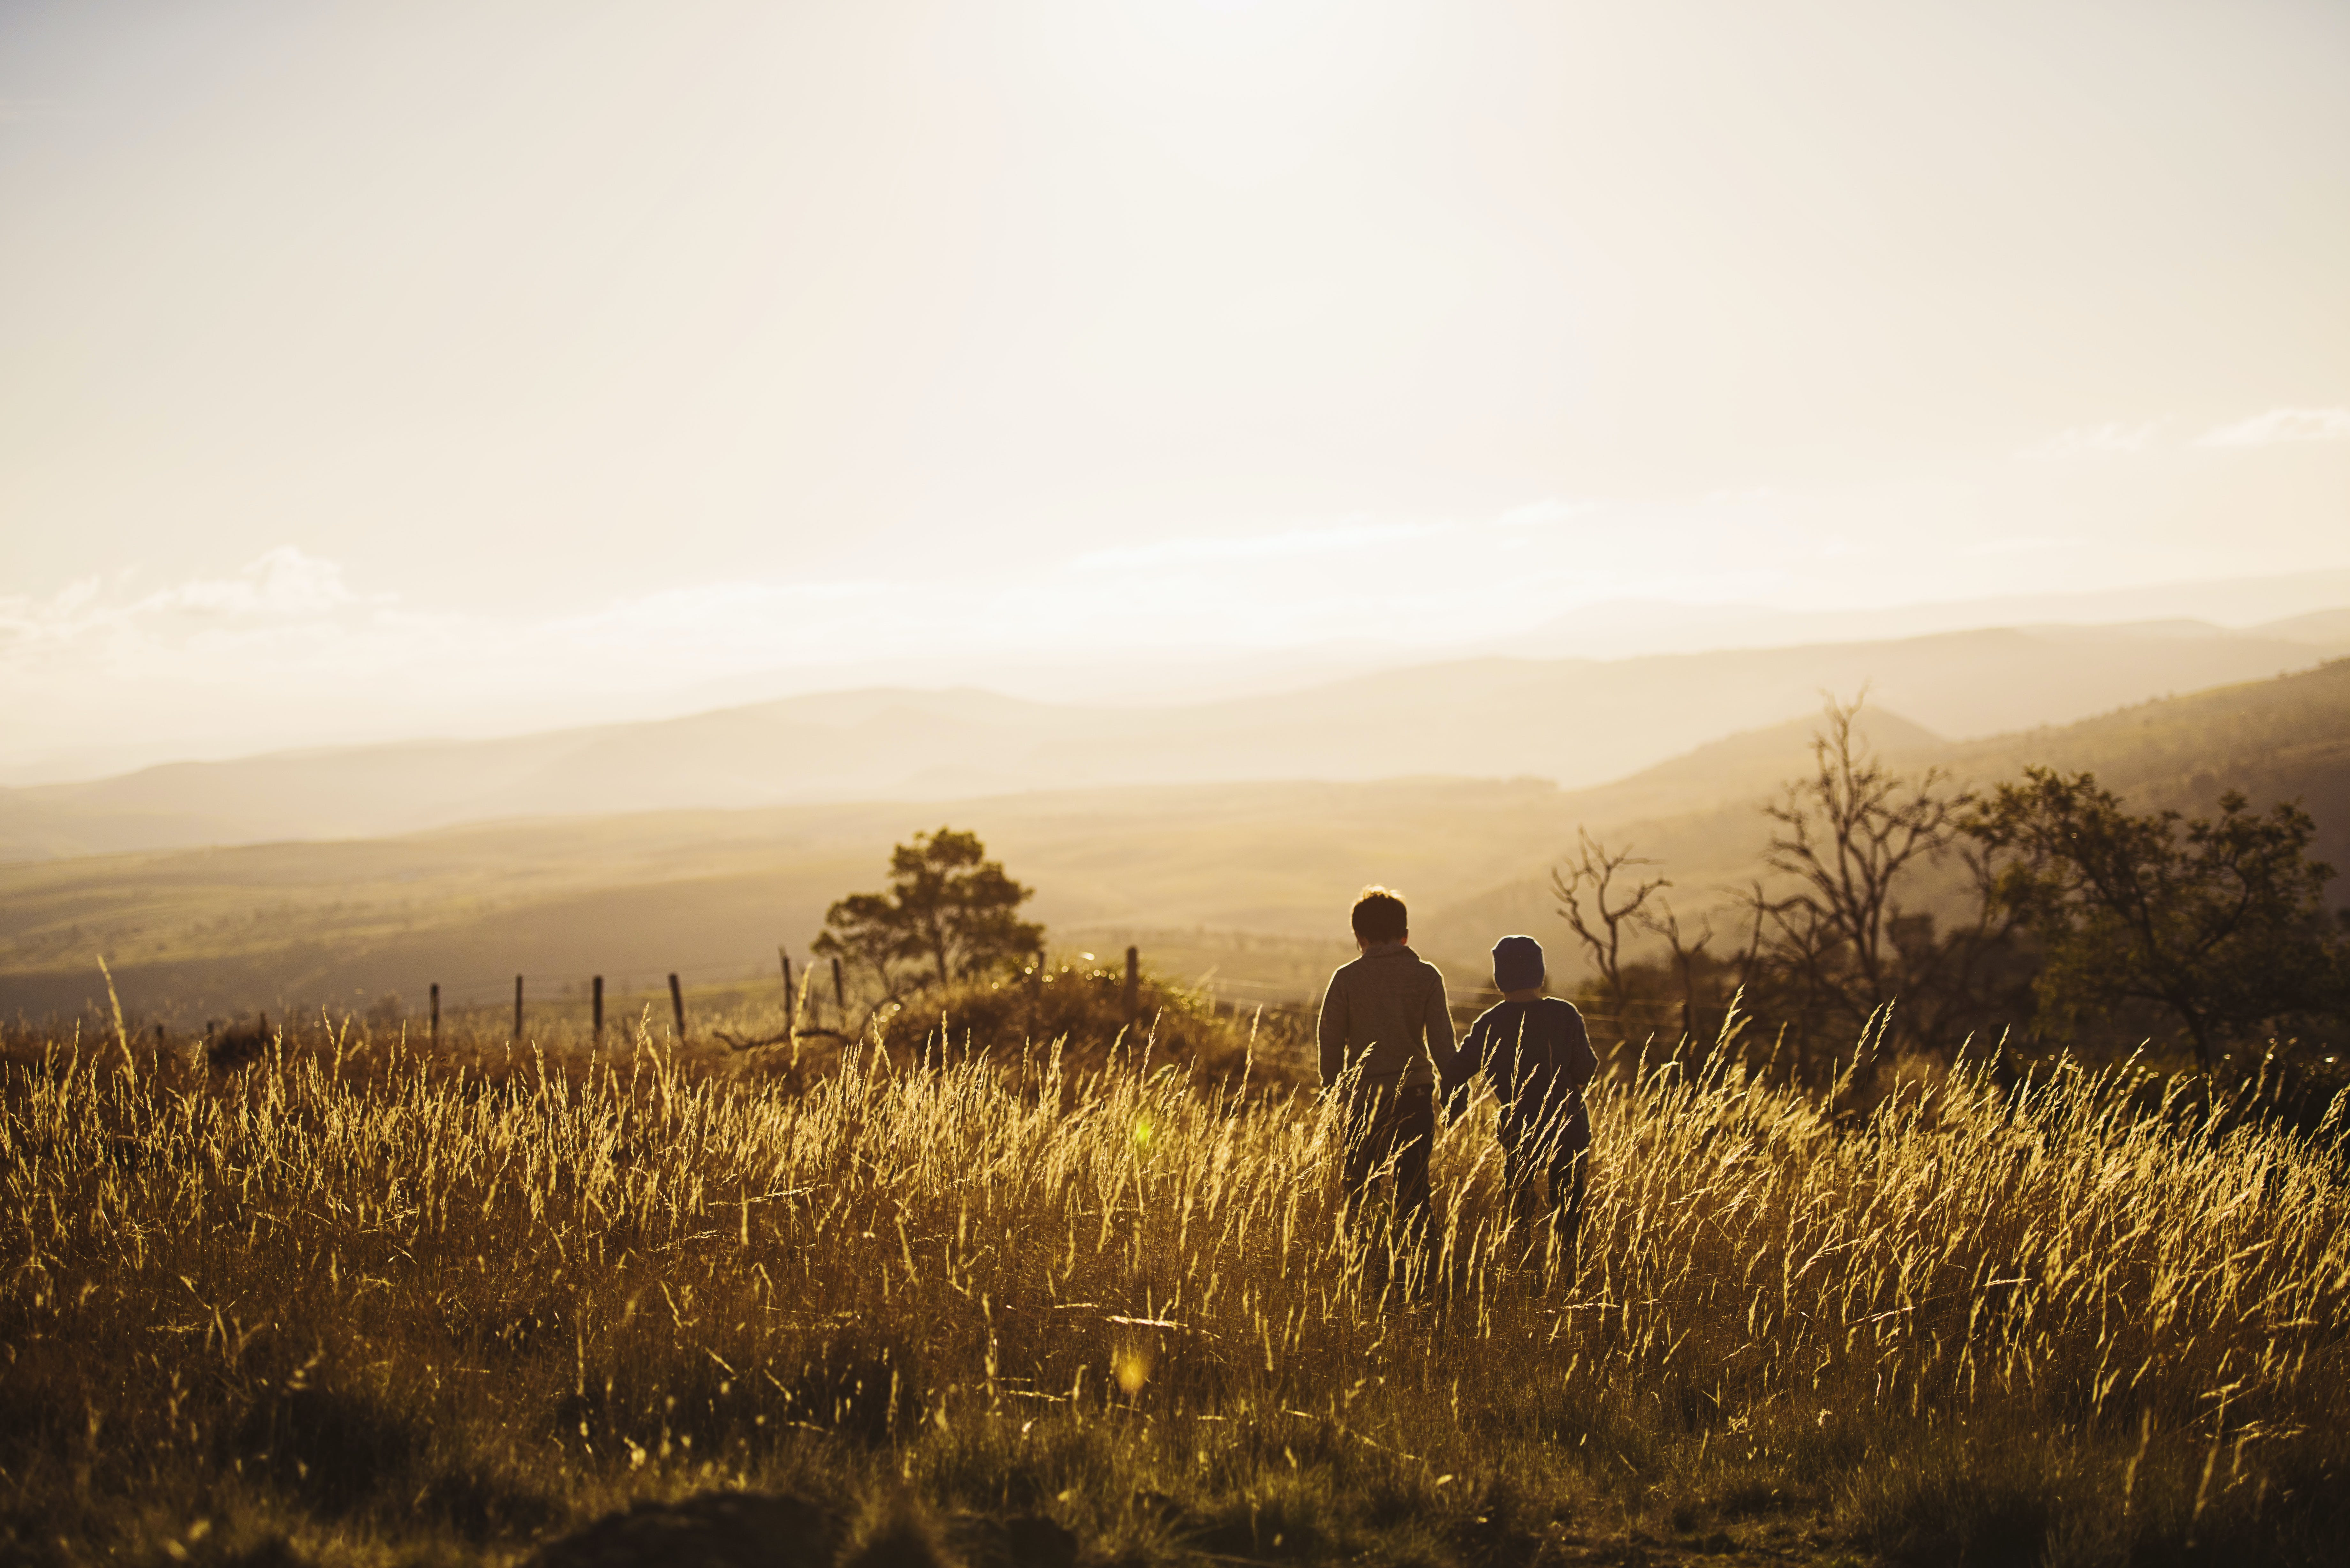 Two Persons Walking on Grassy Field